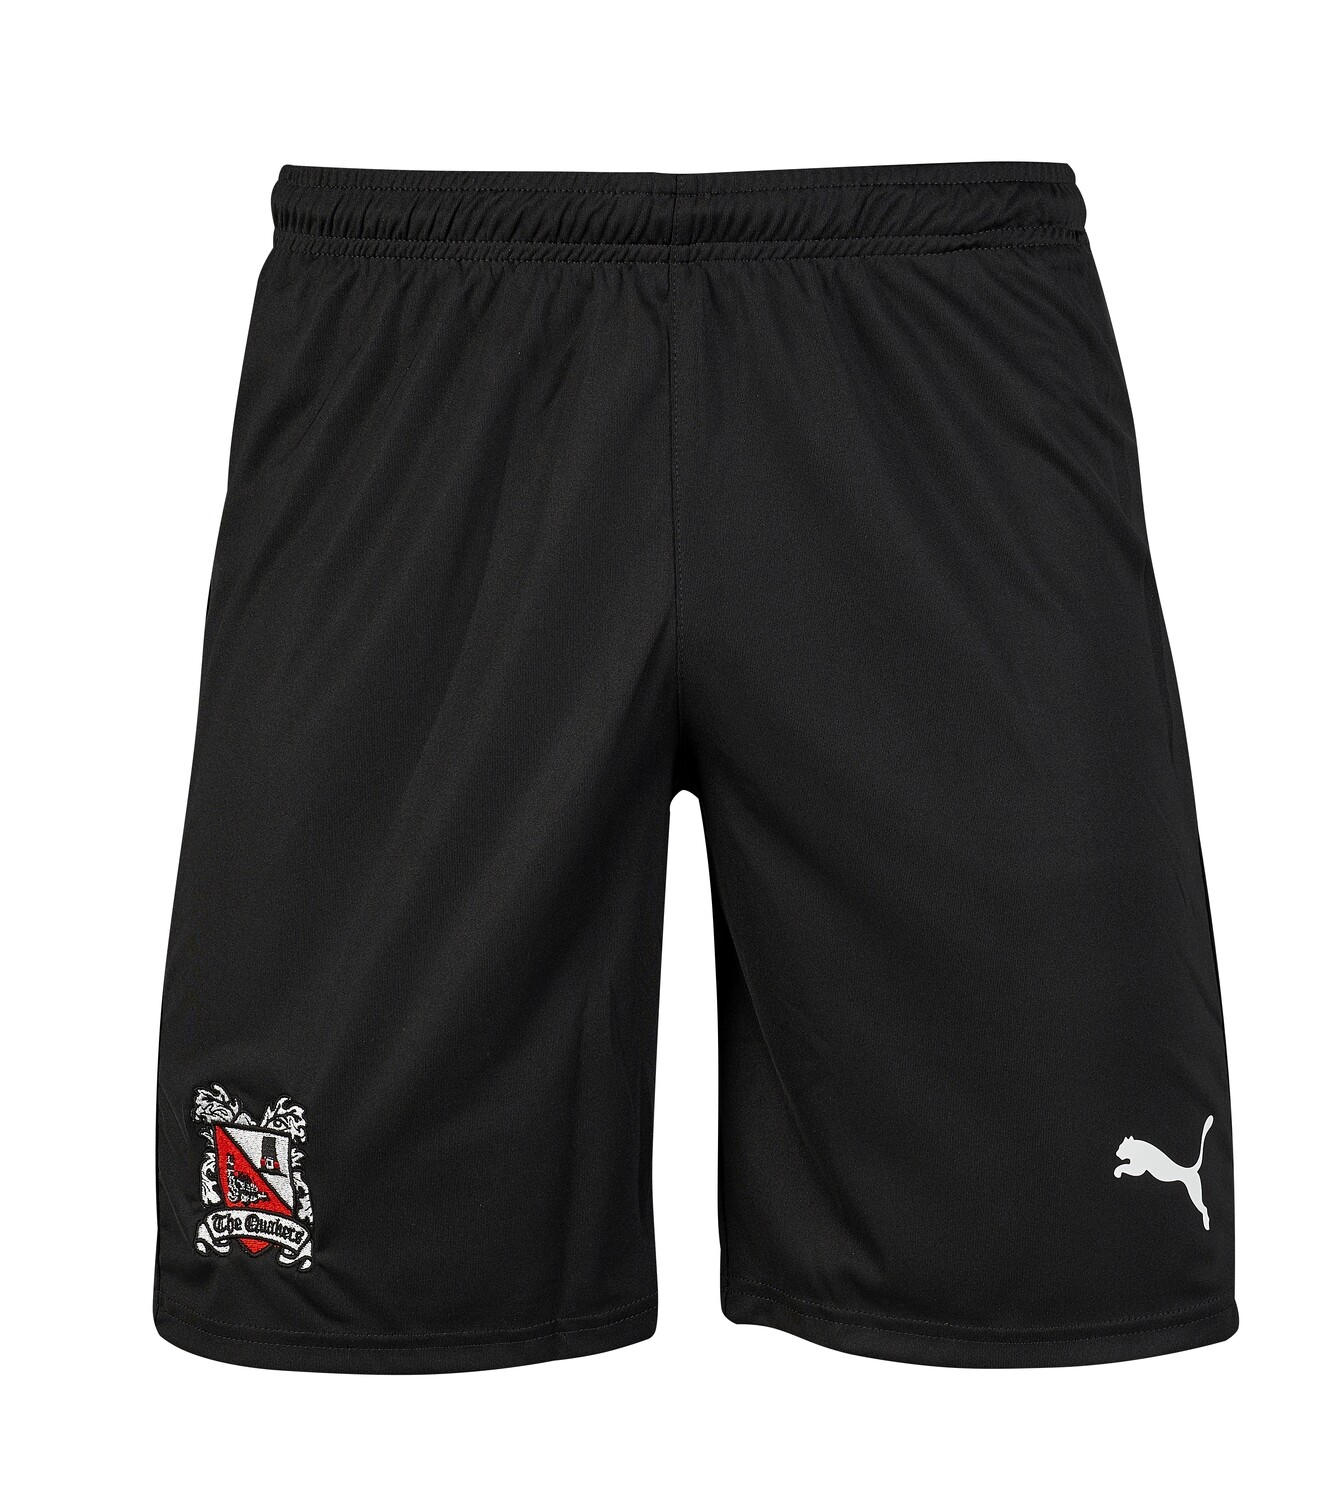 Puma Home Shorts 19/20 Junior